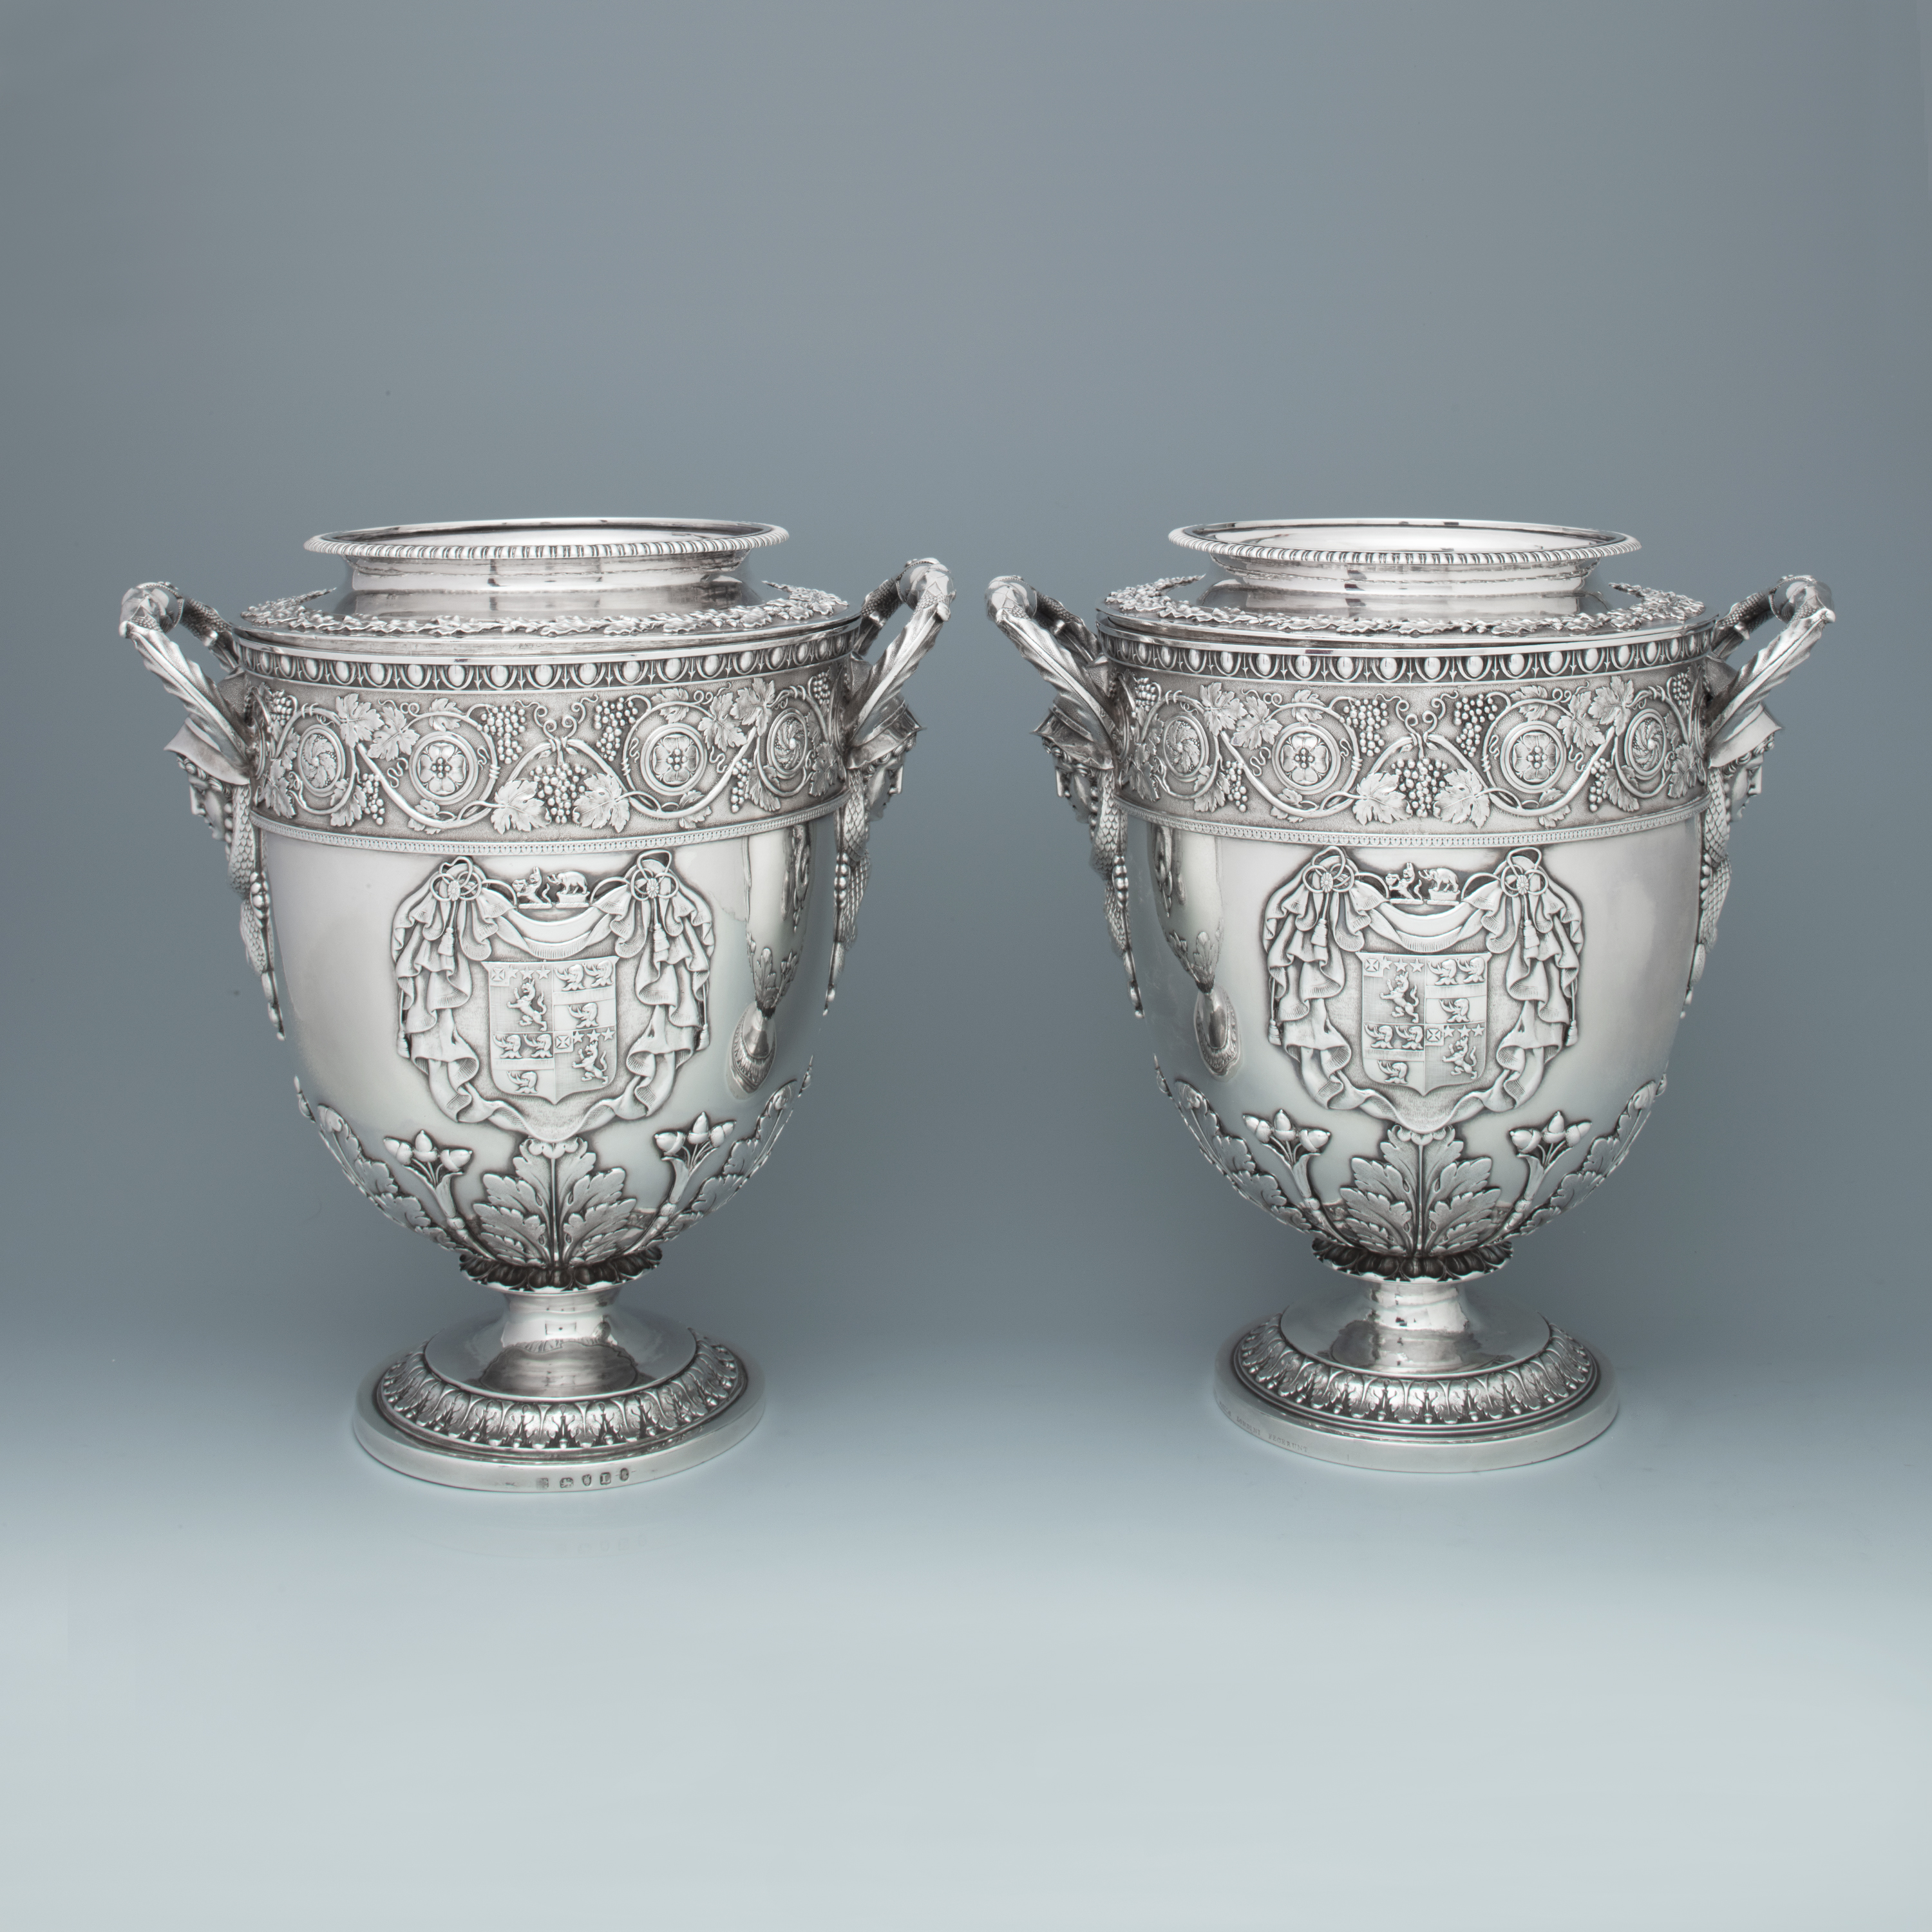 A Pair of George III Antique English Silver Wine Coolers